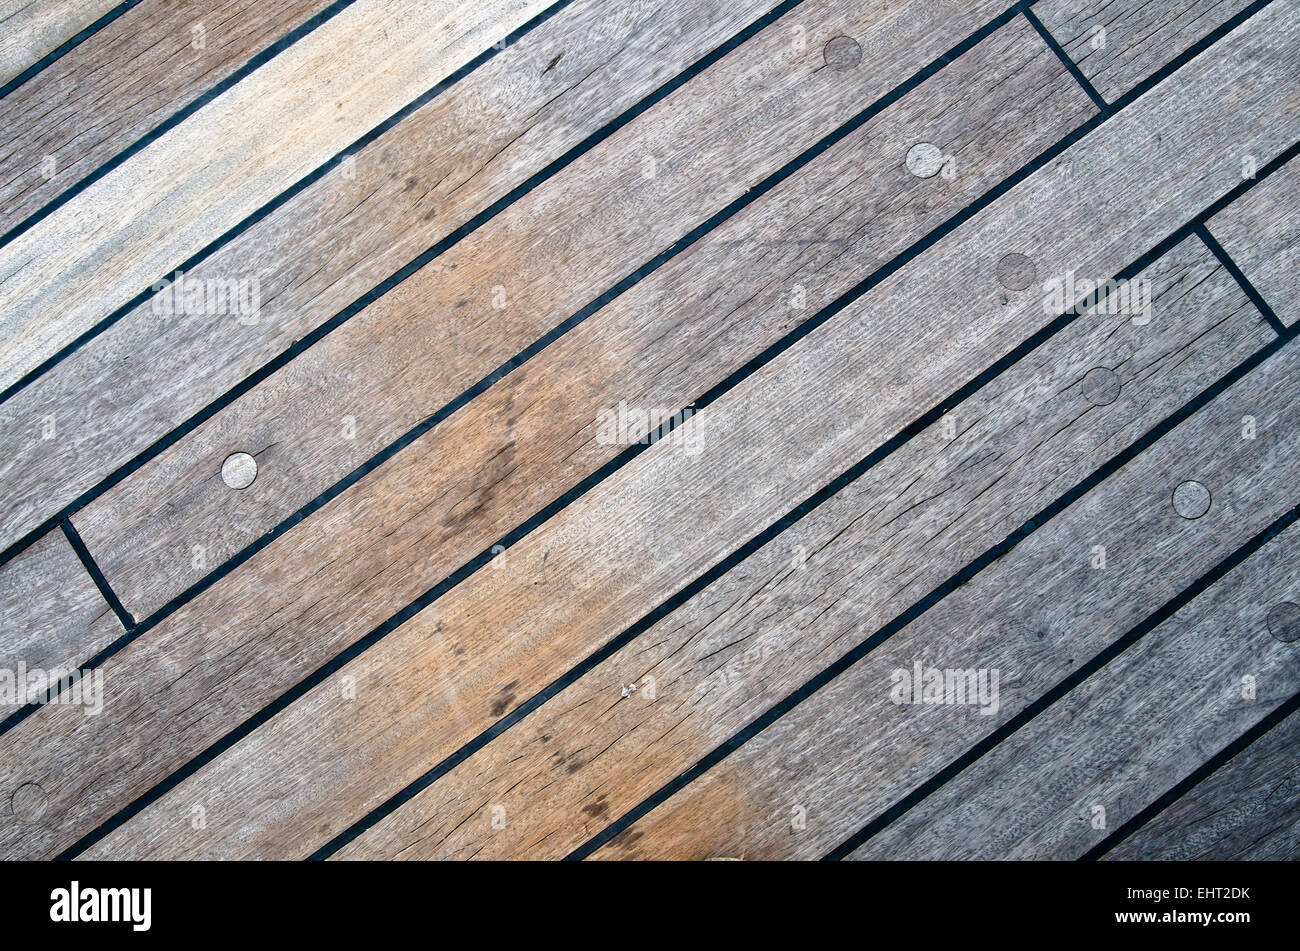 Deck of an ancient sailing vessel, close up - Stock Image